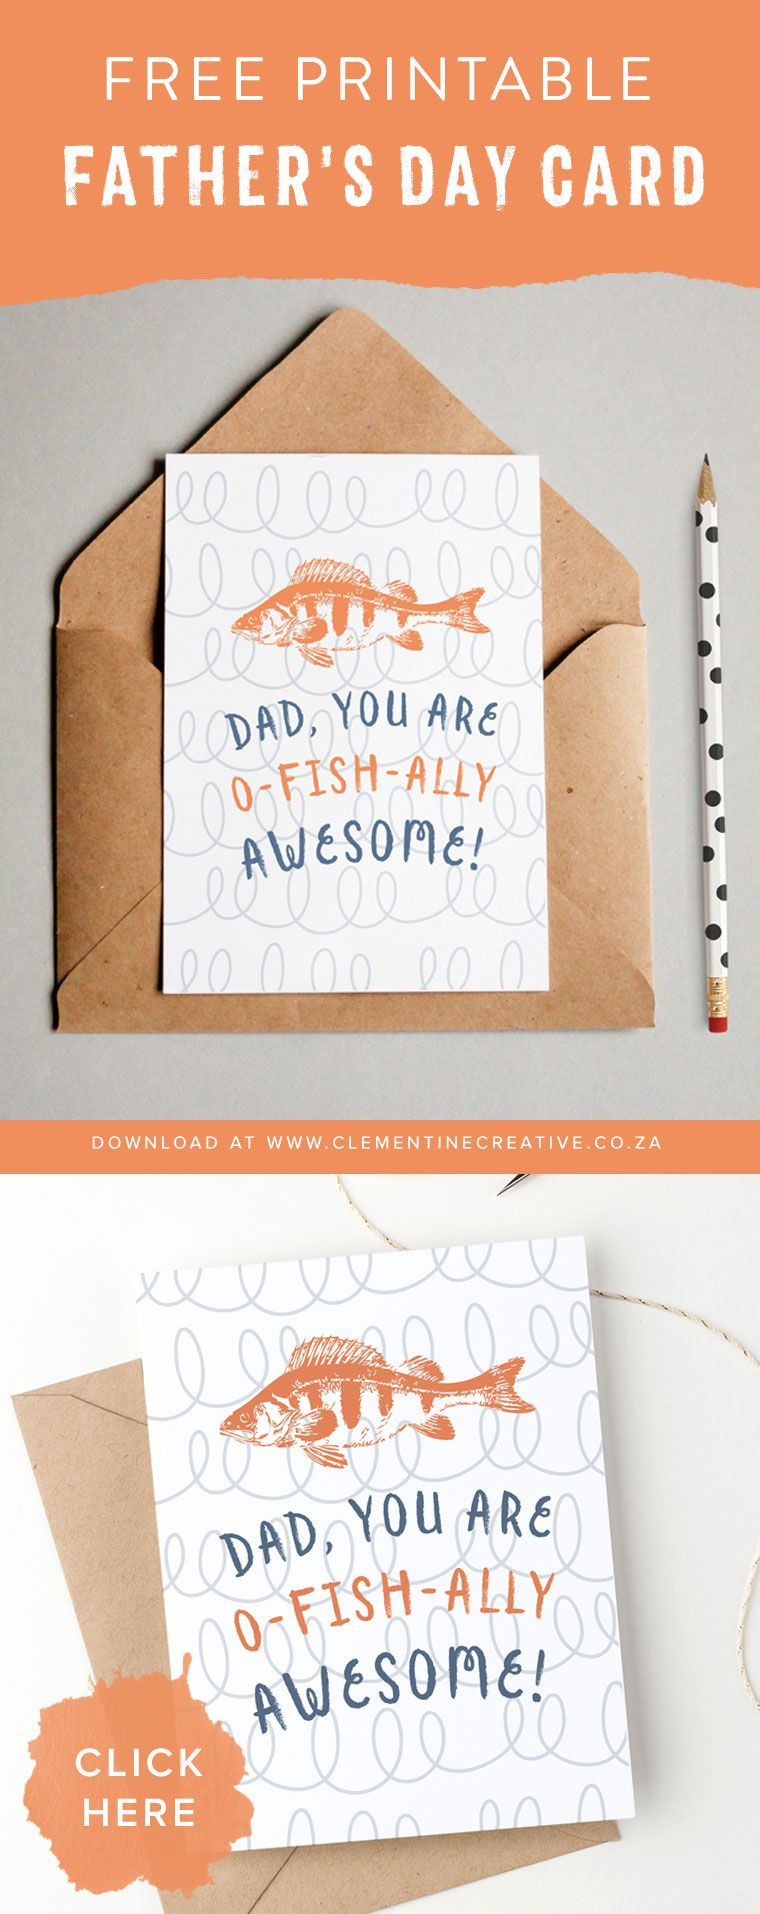 Funny Free Printable Father S Day Card O Fish Ally Awesome Birthday Card Printable Fathers Day Cards Father S Day Printable